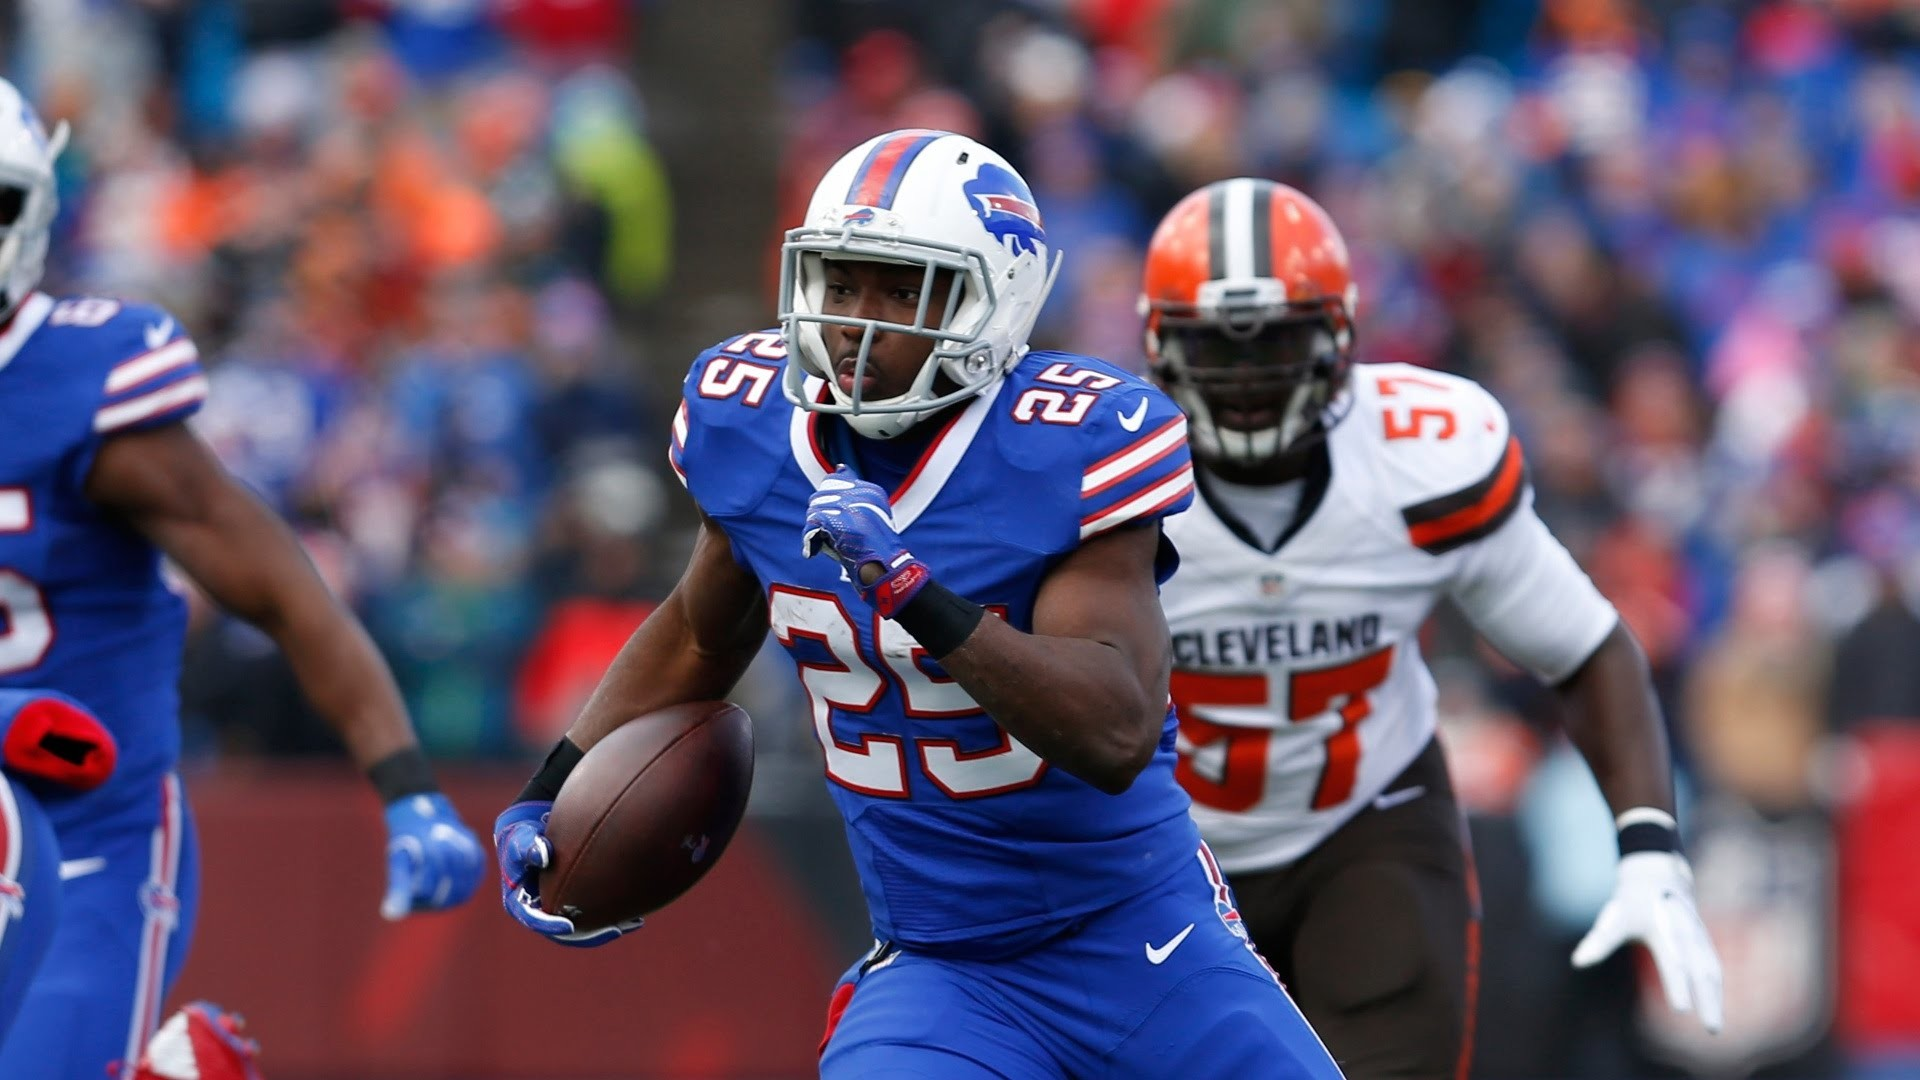 LeSean McCoy Runs Wild | LeSean Mccoy is third in the AFC in rushing yards,  but is averaging nearly